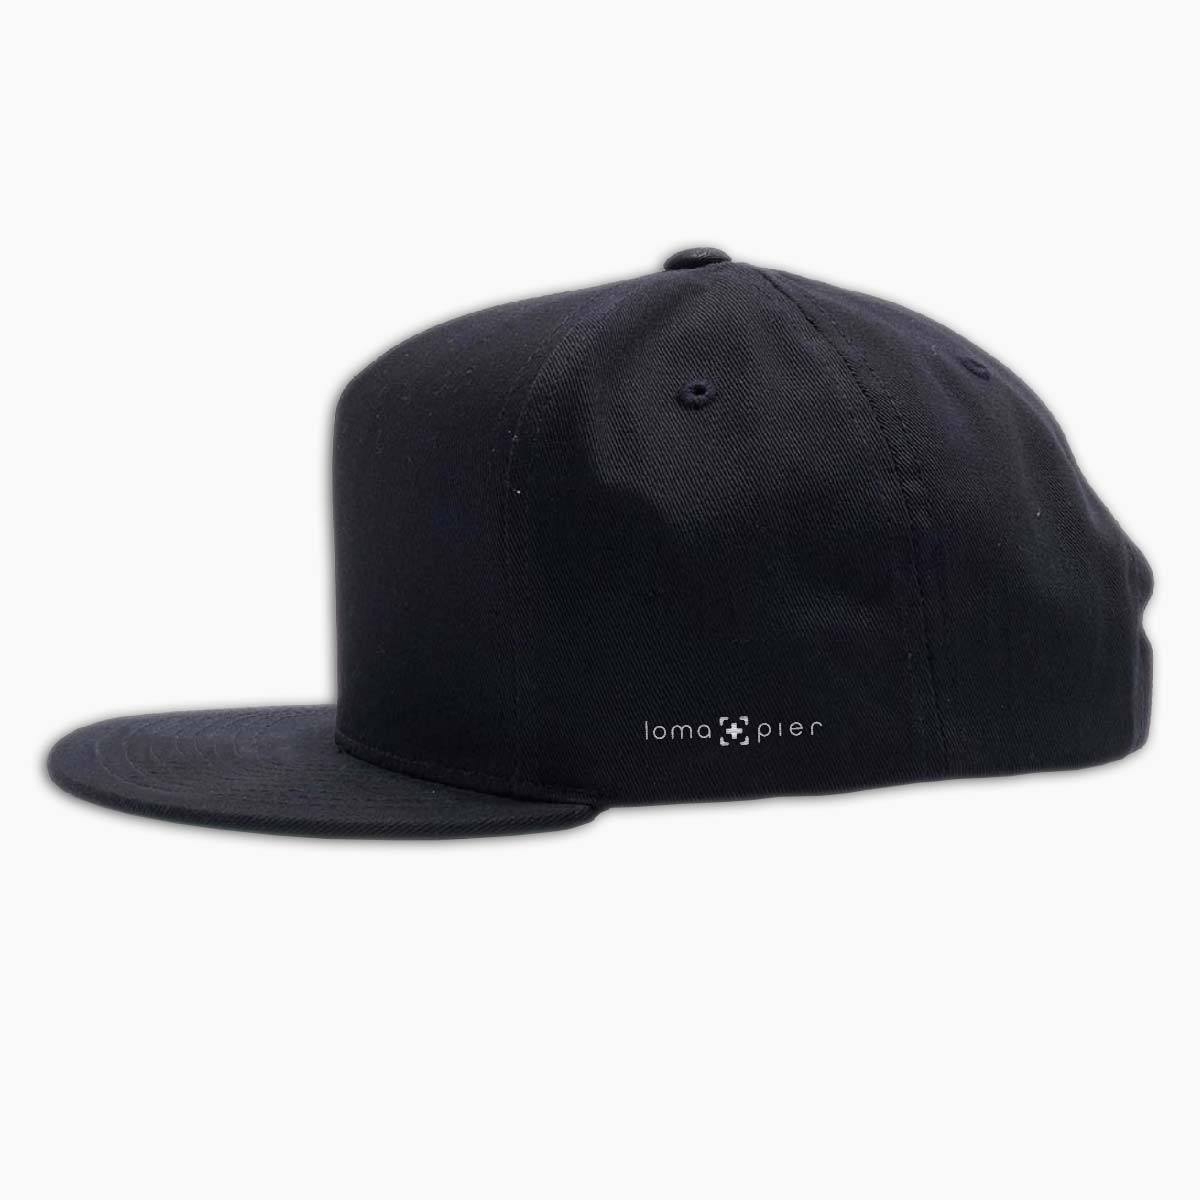 e282abb592d loma+pier left side logo on a black classic snapback hat with white thread  by